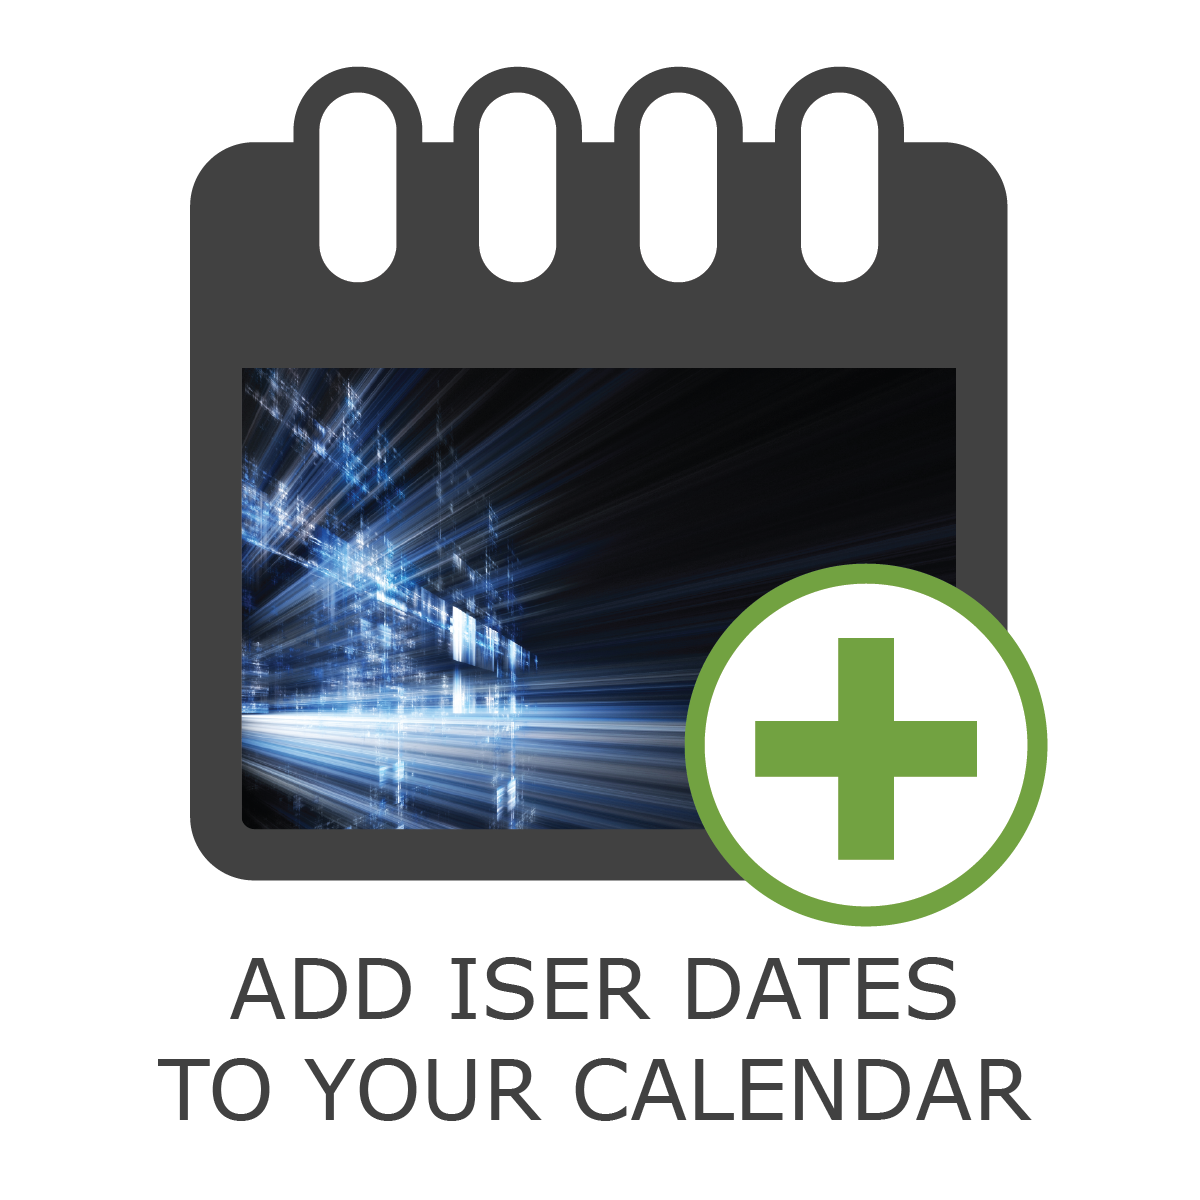 Add ISER dates to your calendar